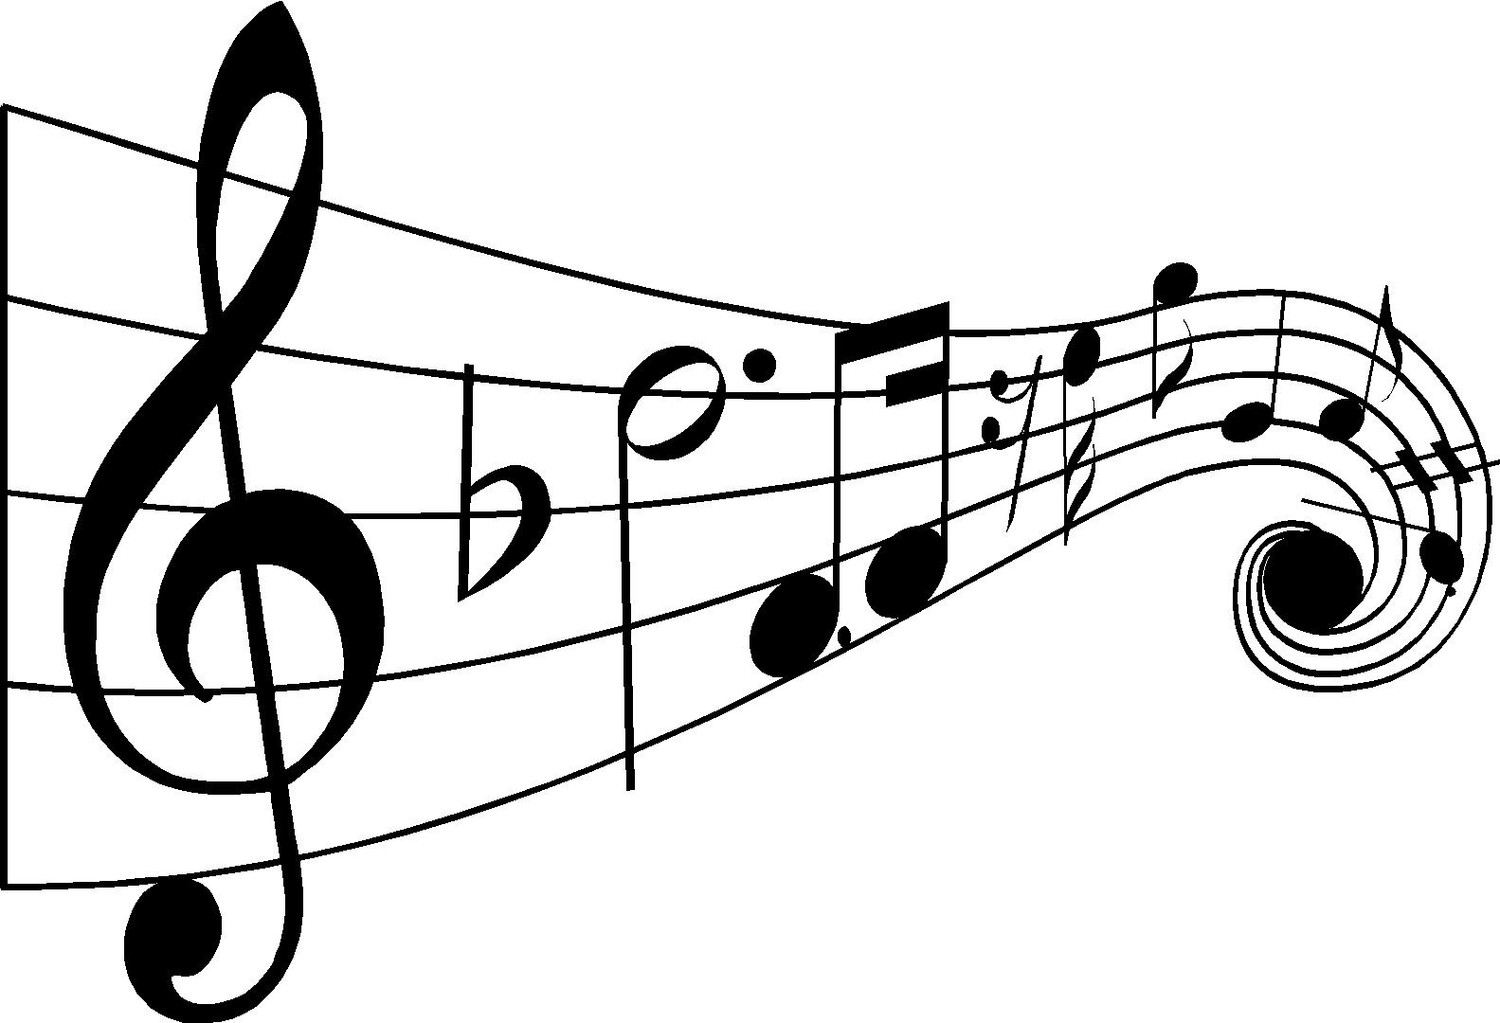 Musical notes clipart black and white clip art library stock Free Black And White Music Pictures, Download Free Clip Art, Free ... clip art library stock